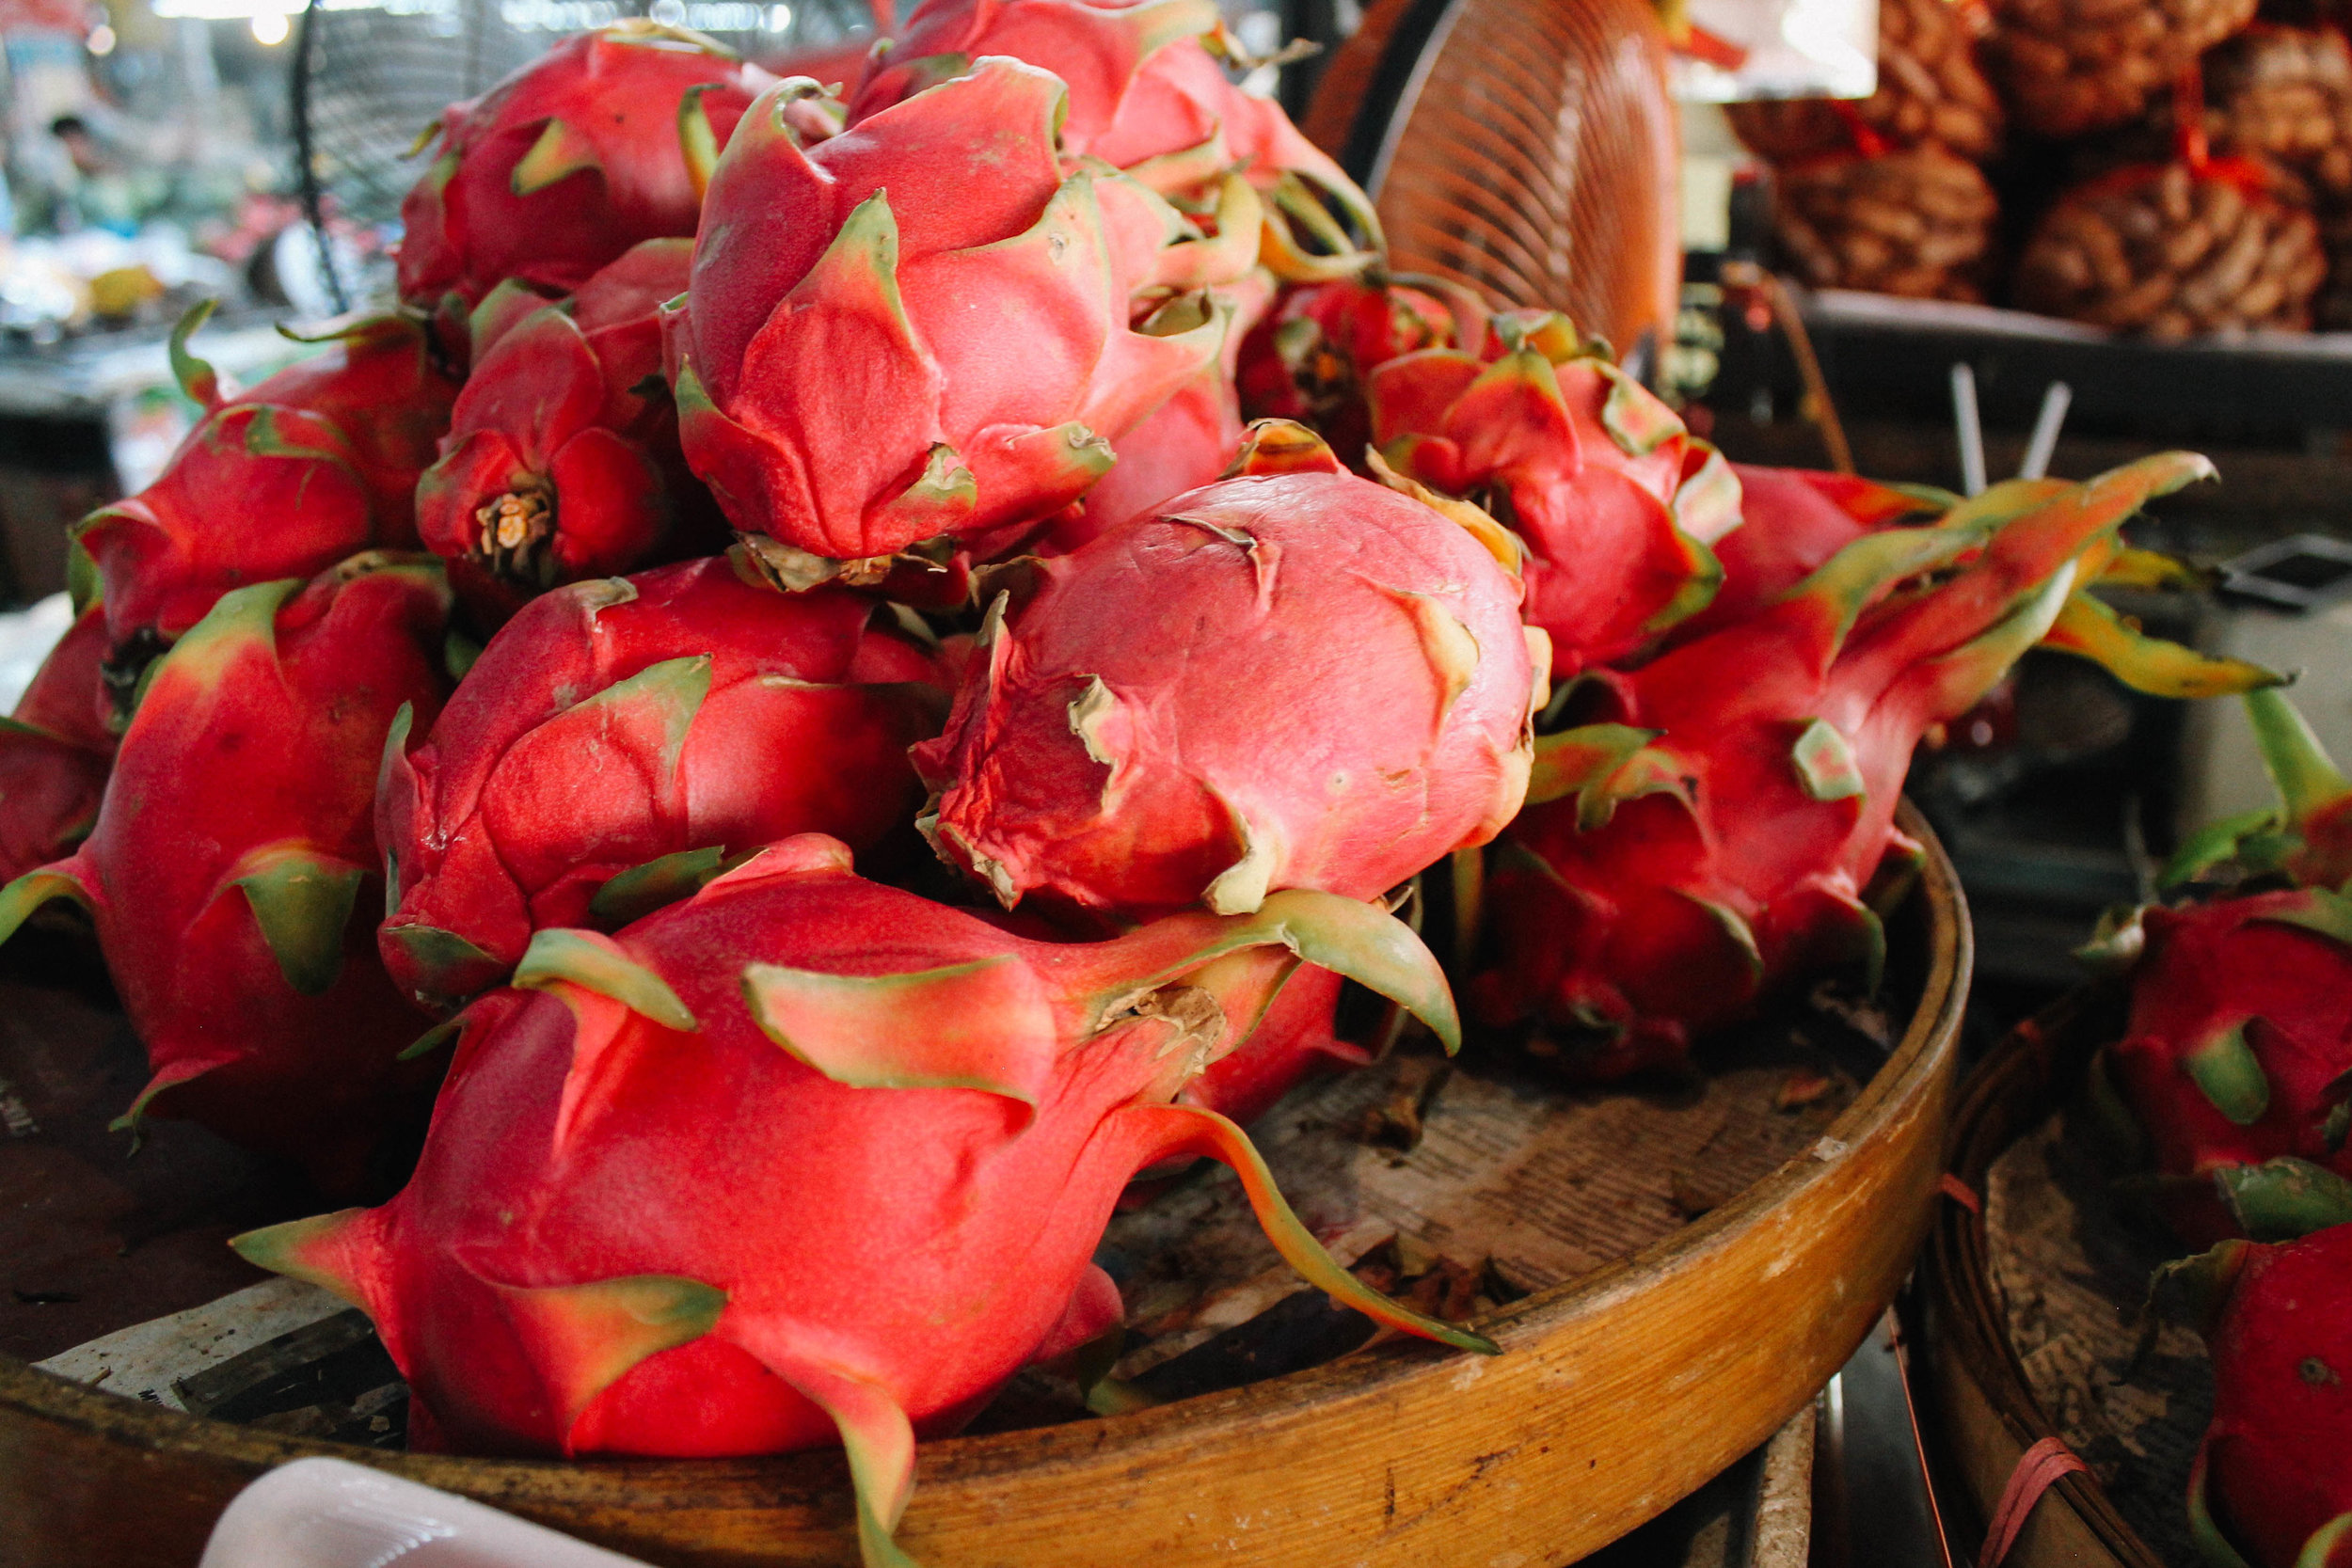 Dragonfruit are a perfect example of a thick-skinned fruit you can buy and peel yourself.